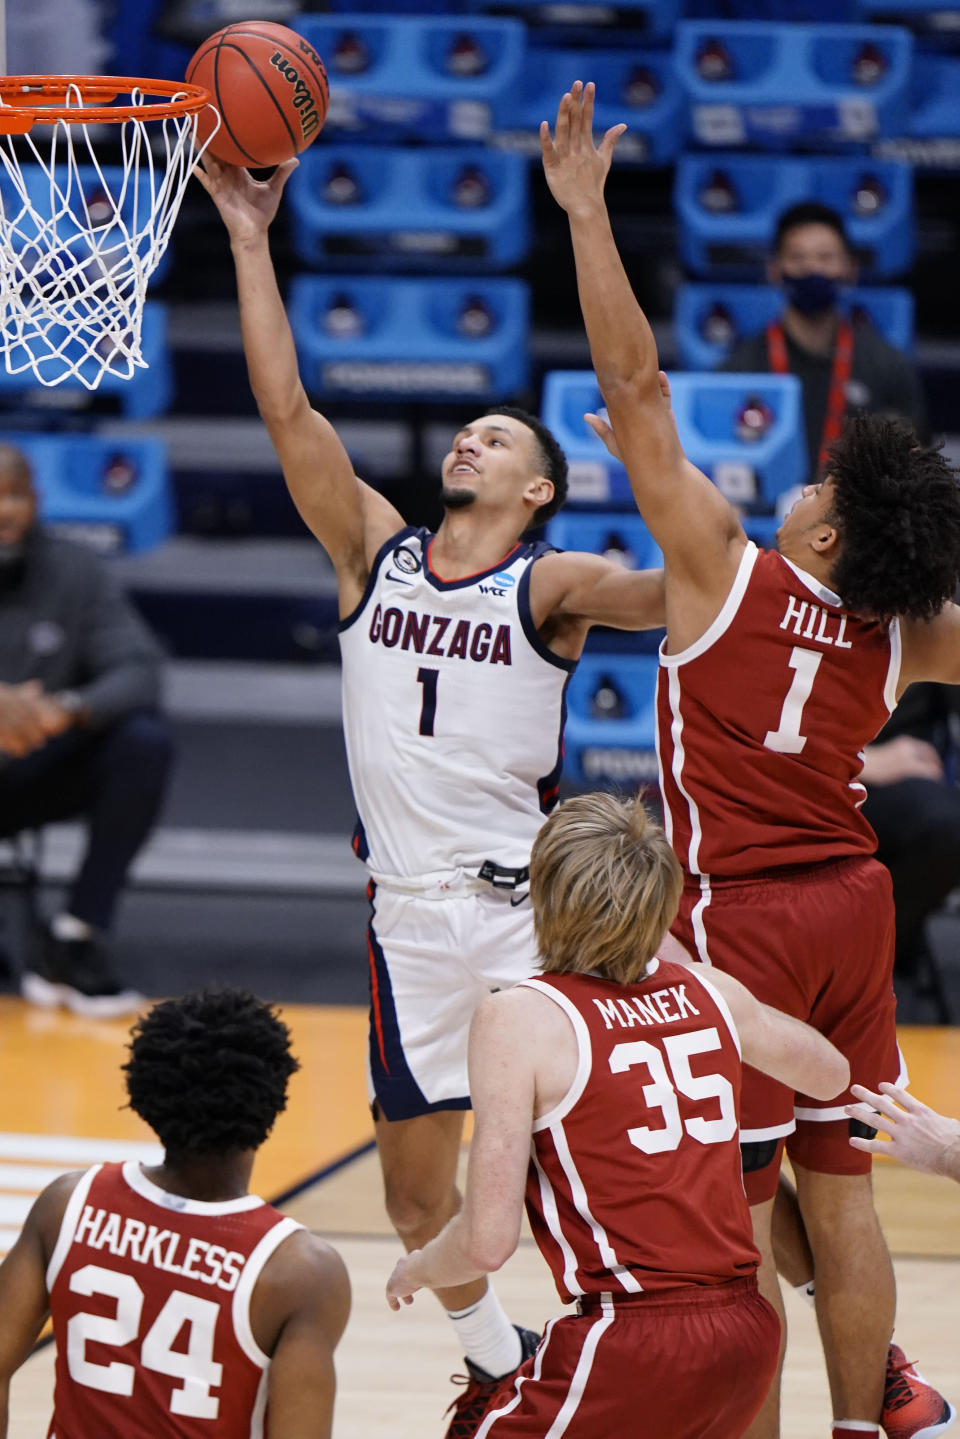 Gonzaga guard Jalen Suggs, left, shoots in front of Oklahoma forward Jalen Hill in the second half of a college basketball game in the second round of the NCAA tournament at Hinkle Fieldhouse in Indianapolis, Monday, March 22, 2021. (AP Photo/AJ Mast)